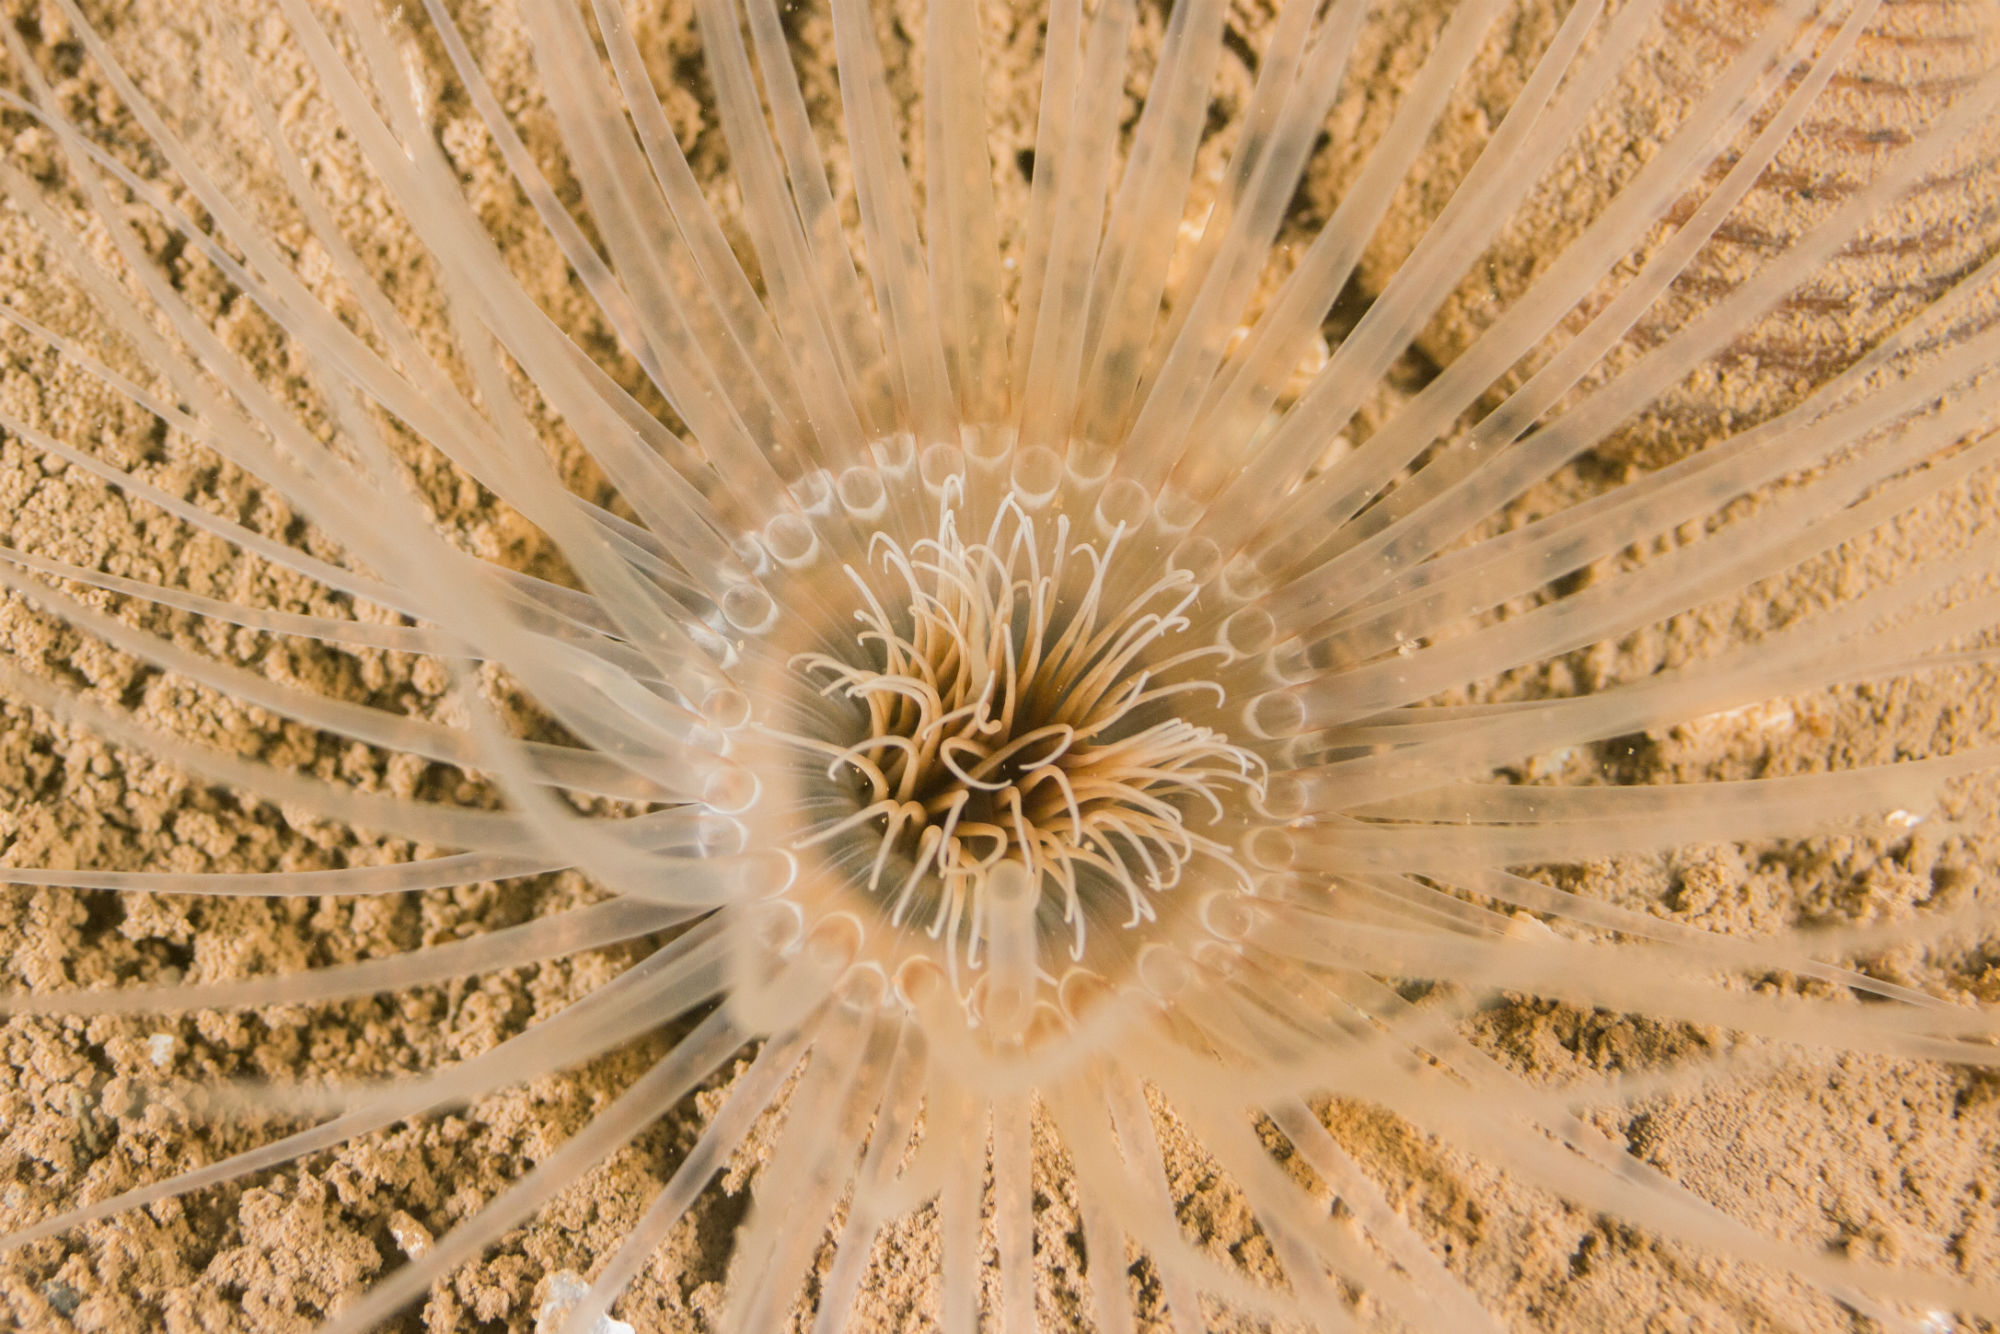 A Burrowing Tube Anemone in the Mud of Deer Island, New Brunswick